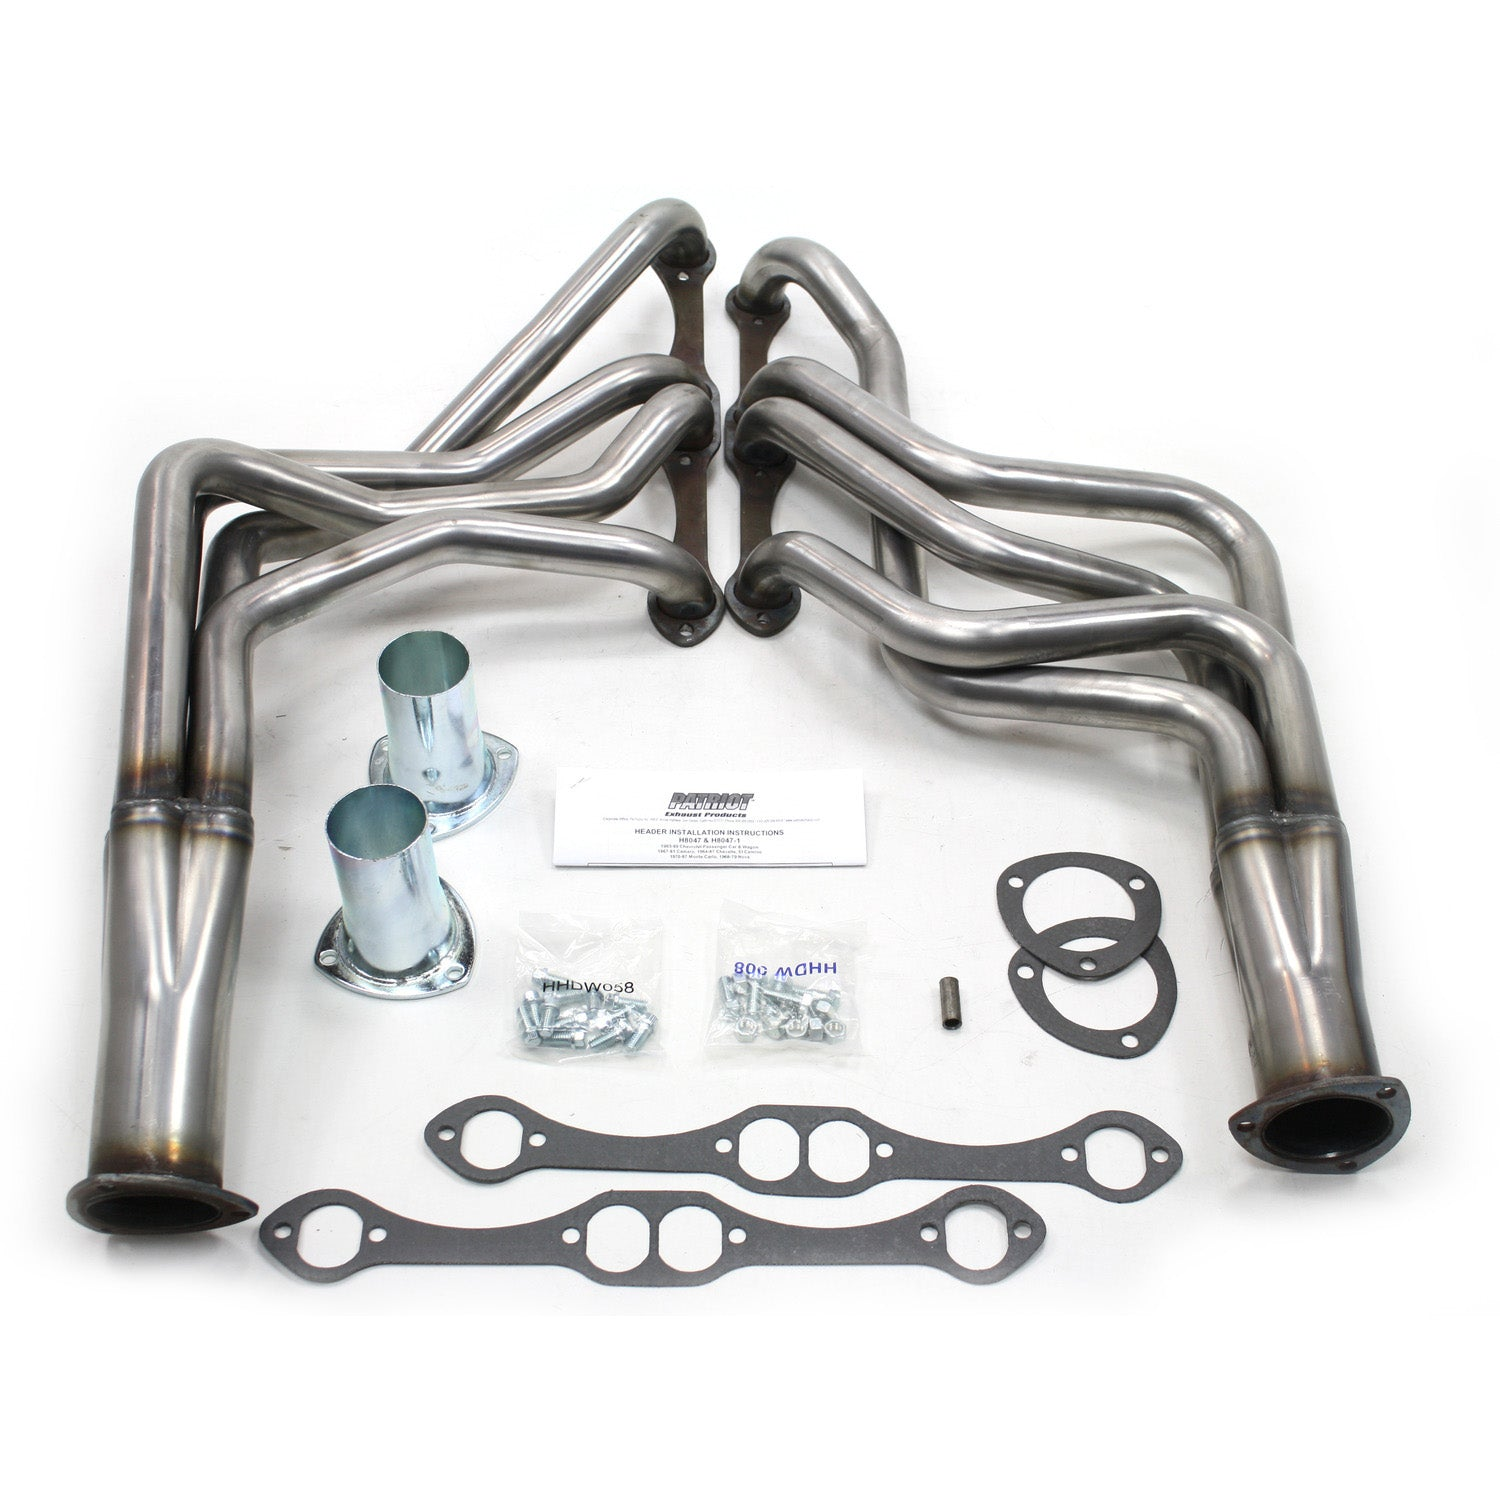 "Patriot Exhaust H8047 1 5/8"" Full Length Header Chevrolet 67-81 Camaro 64-77 Chevlle/Malibu 70-77 Monte Carlo 65-89 Passenger Car/Wagon 265-400 Chevrolet Engine Raw Steel"